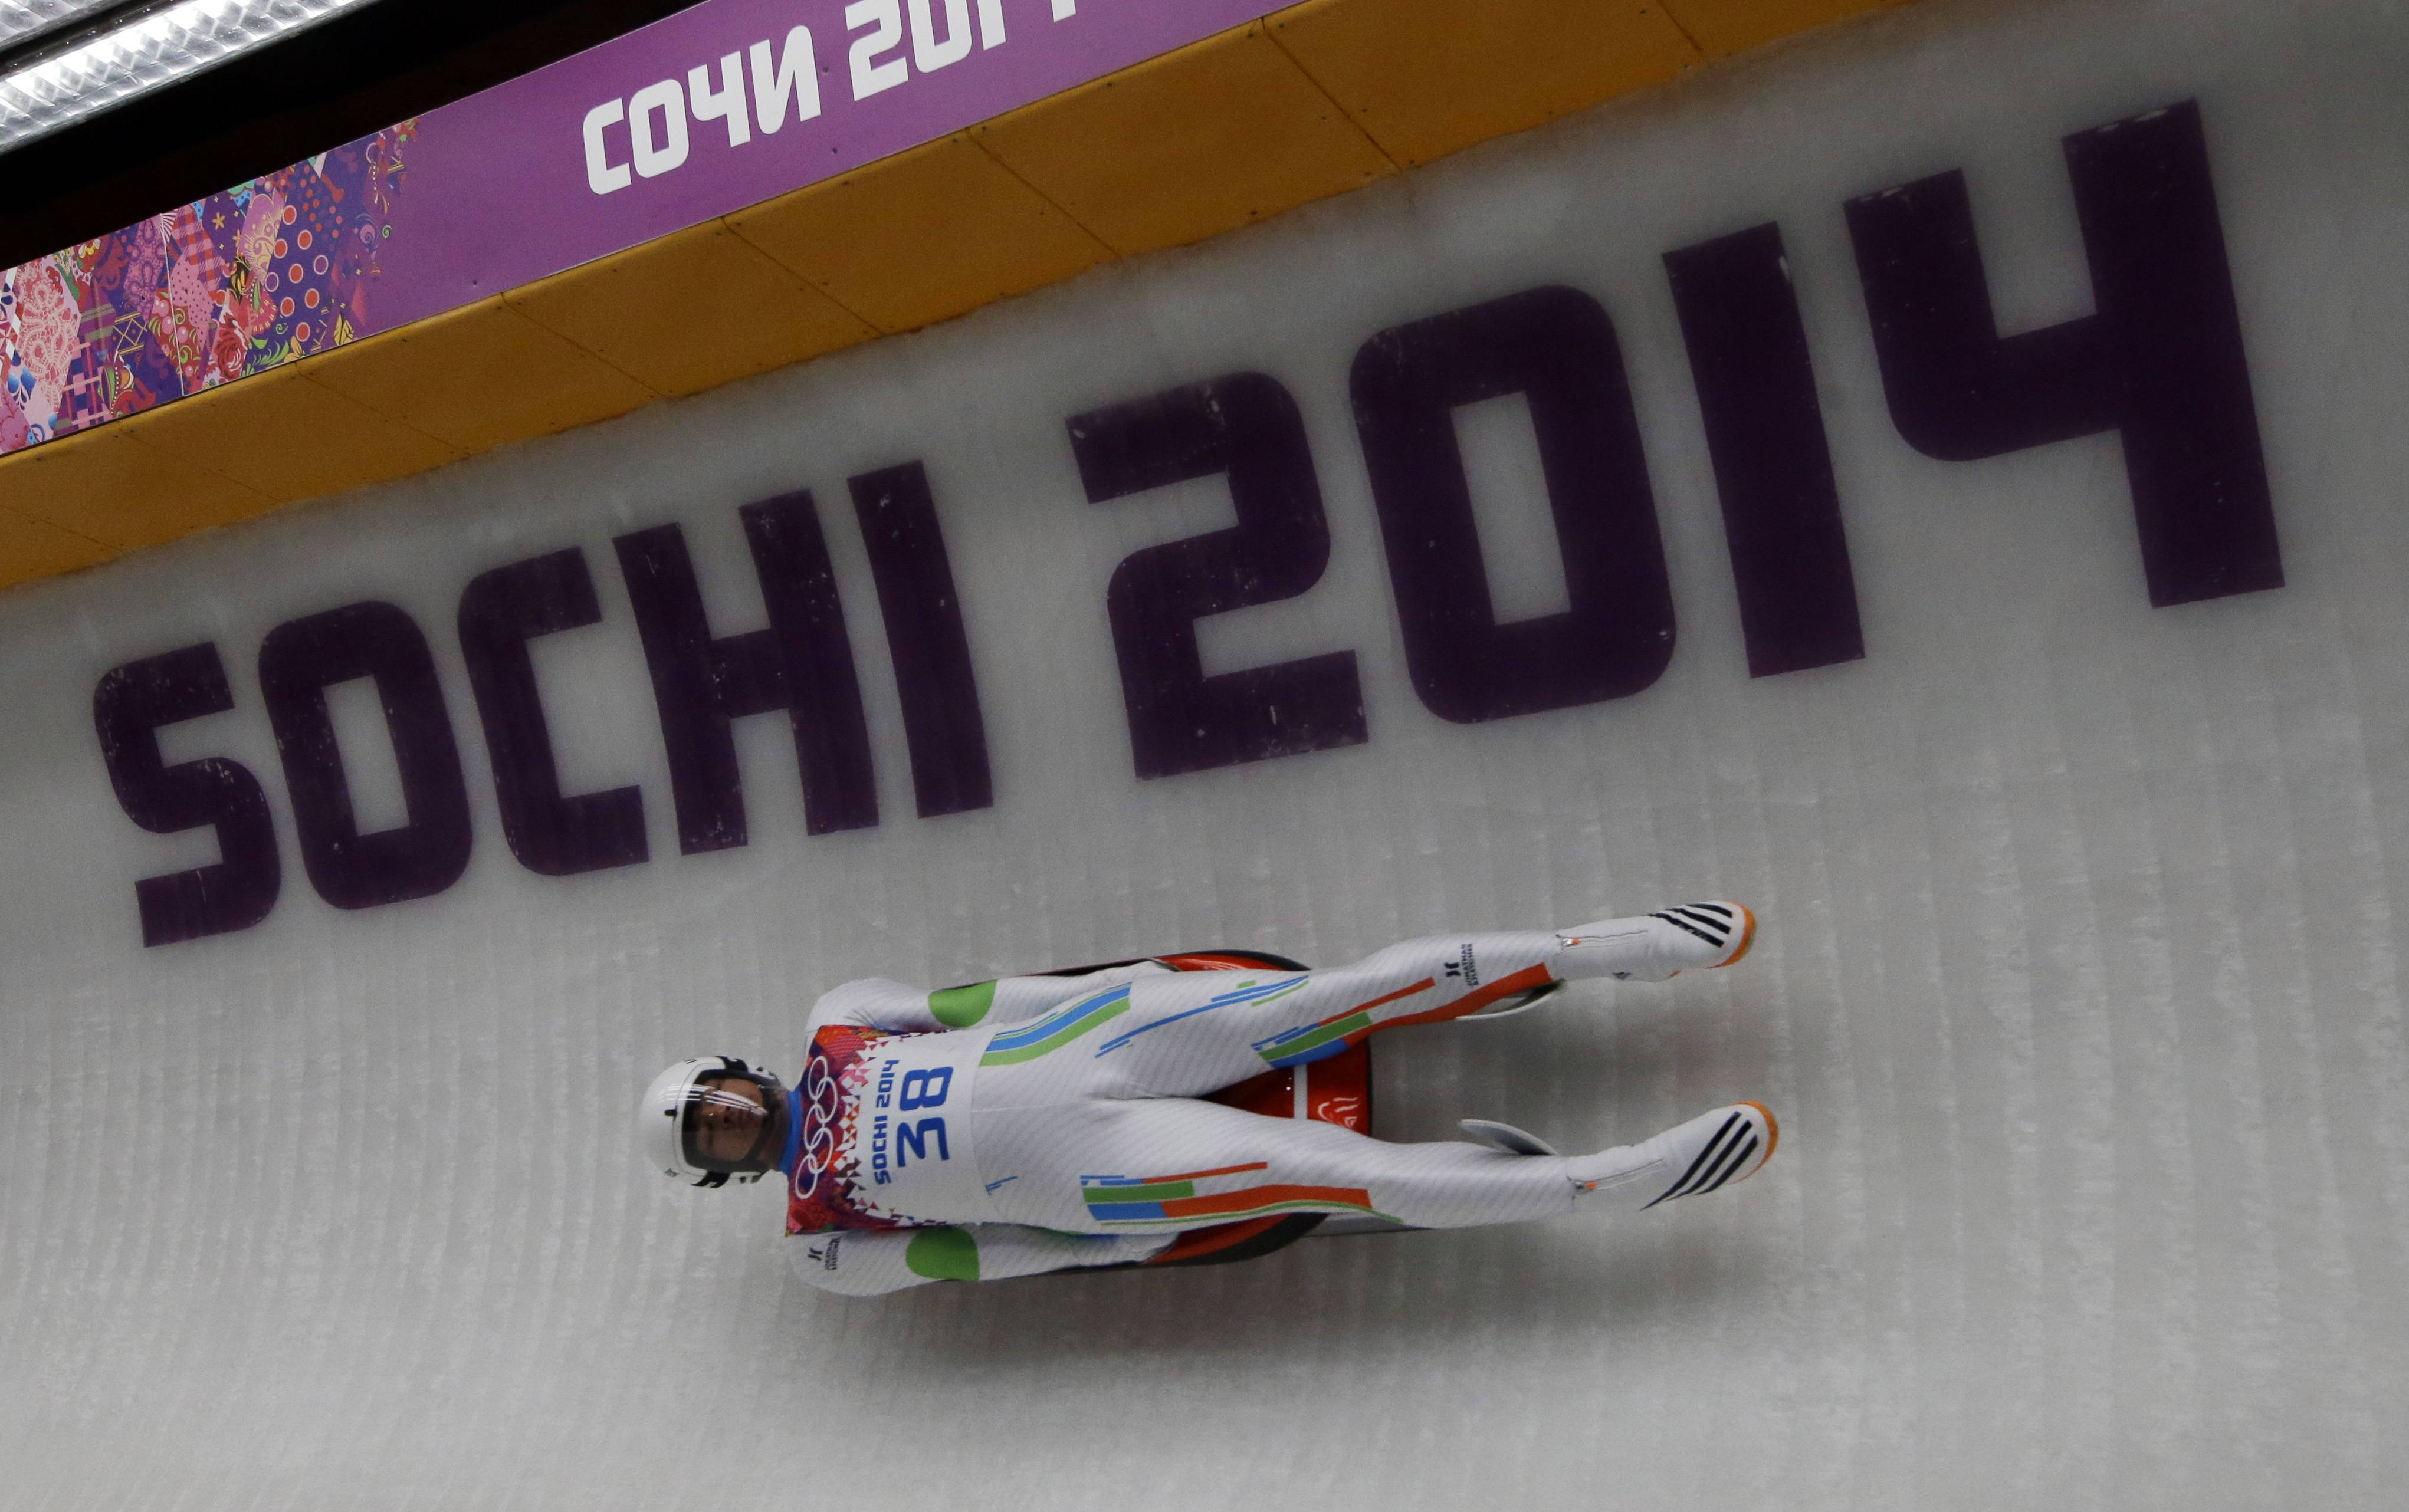 Shiva Keshavan, who if from India but is competing under the Olympics flag, takes turn five in the third run during the men's singles luge final.